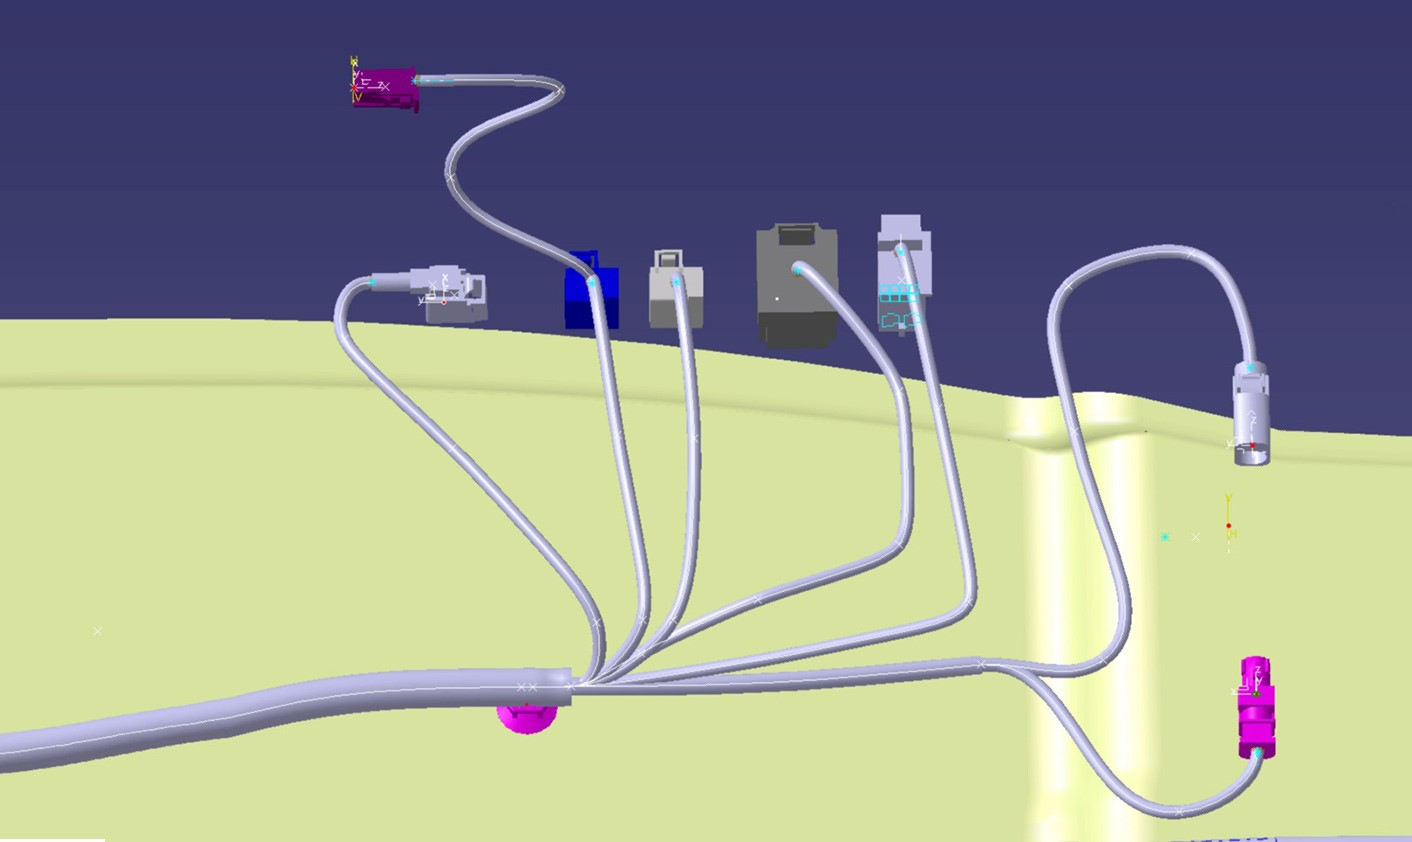 Enjoyable Engineering Services For Cad Design And Routing Of Automotive Cable Wiring Cloud Monangrecoveryedborg